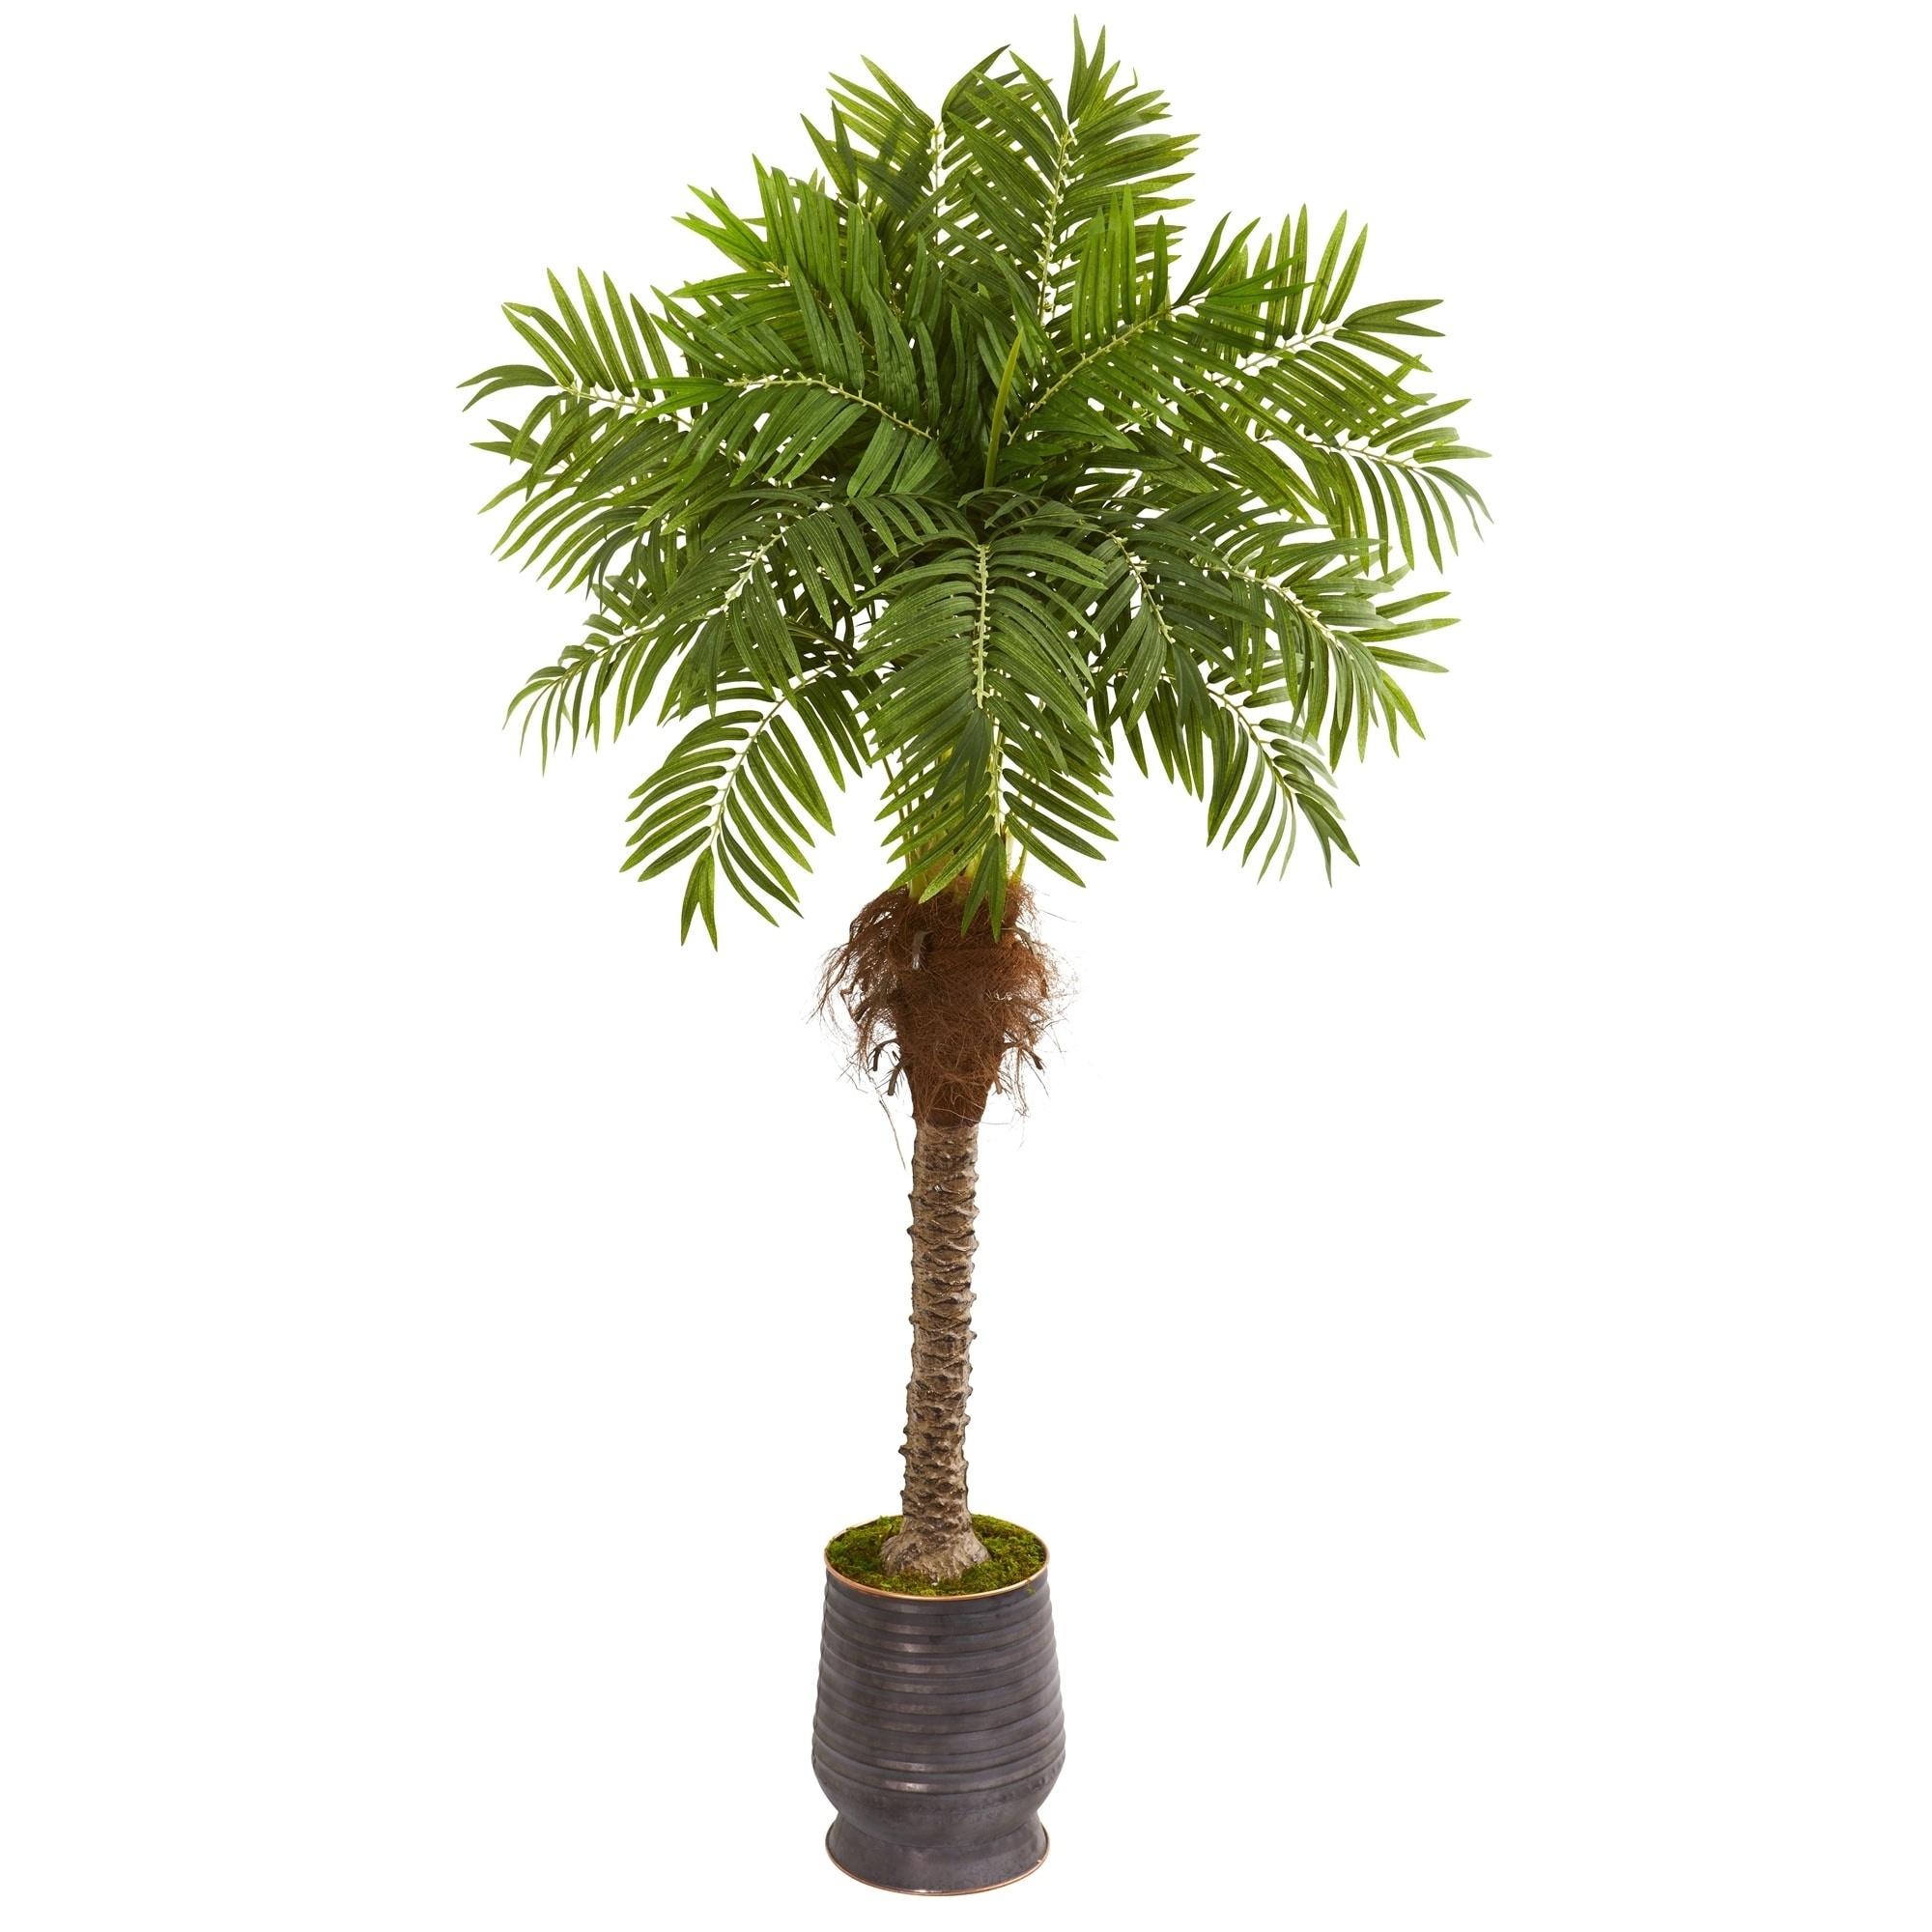 73 Robellini Palm Artificial Tree in Metal Planter